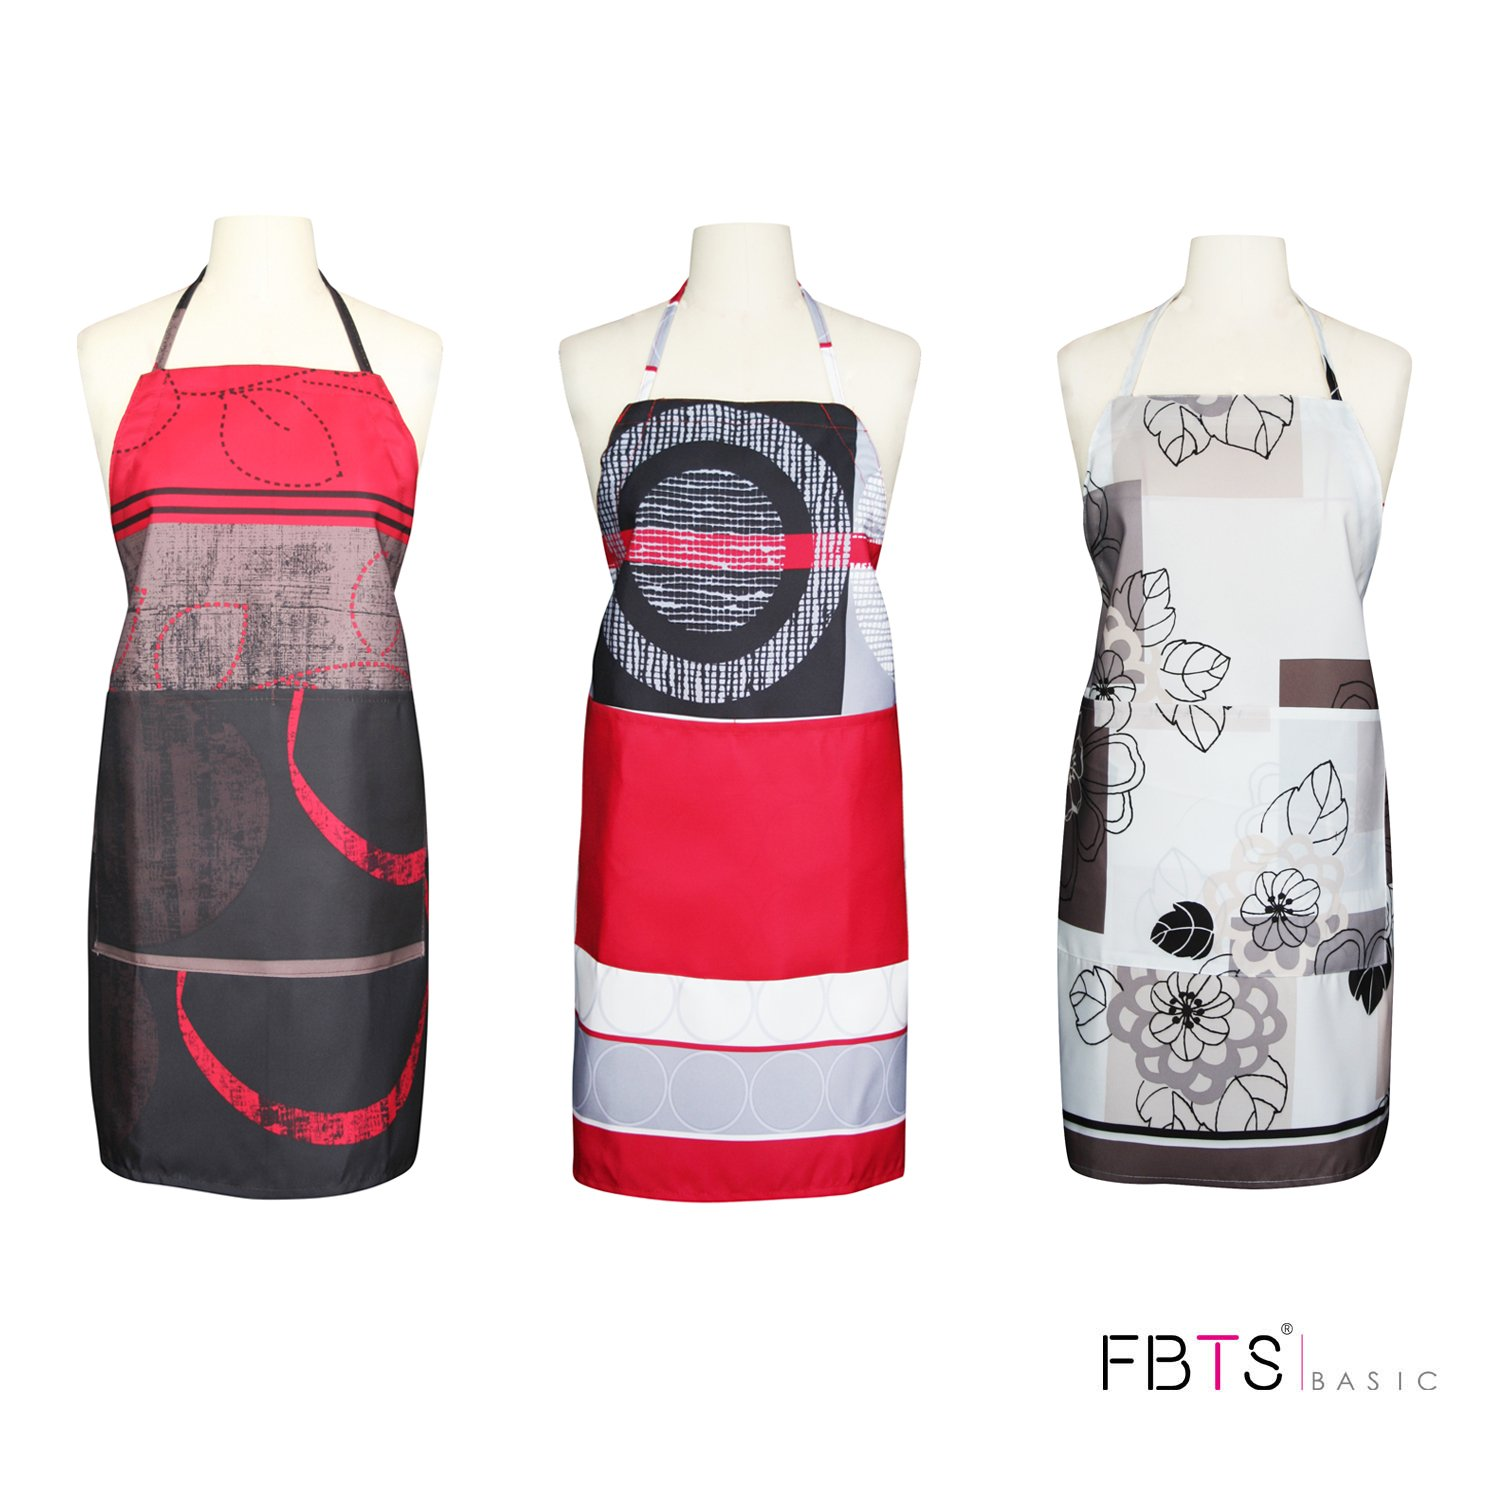 FBTS Basic Womens Aprons with Two Big Front Pockets (Set of 3) Adjustable Buckles Water Resistant For Women And Men Fabritones FTAP003B